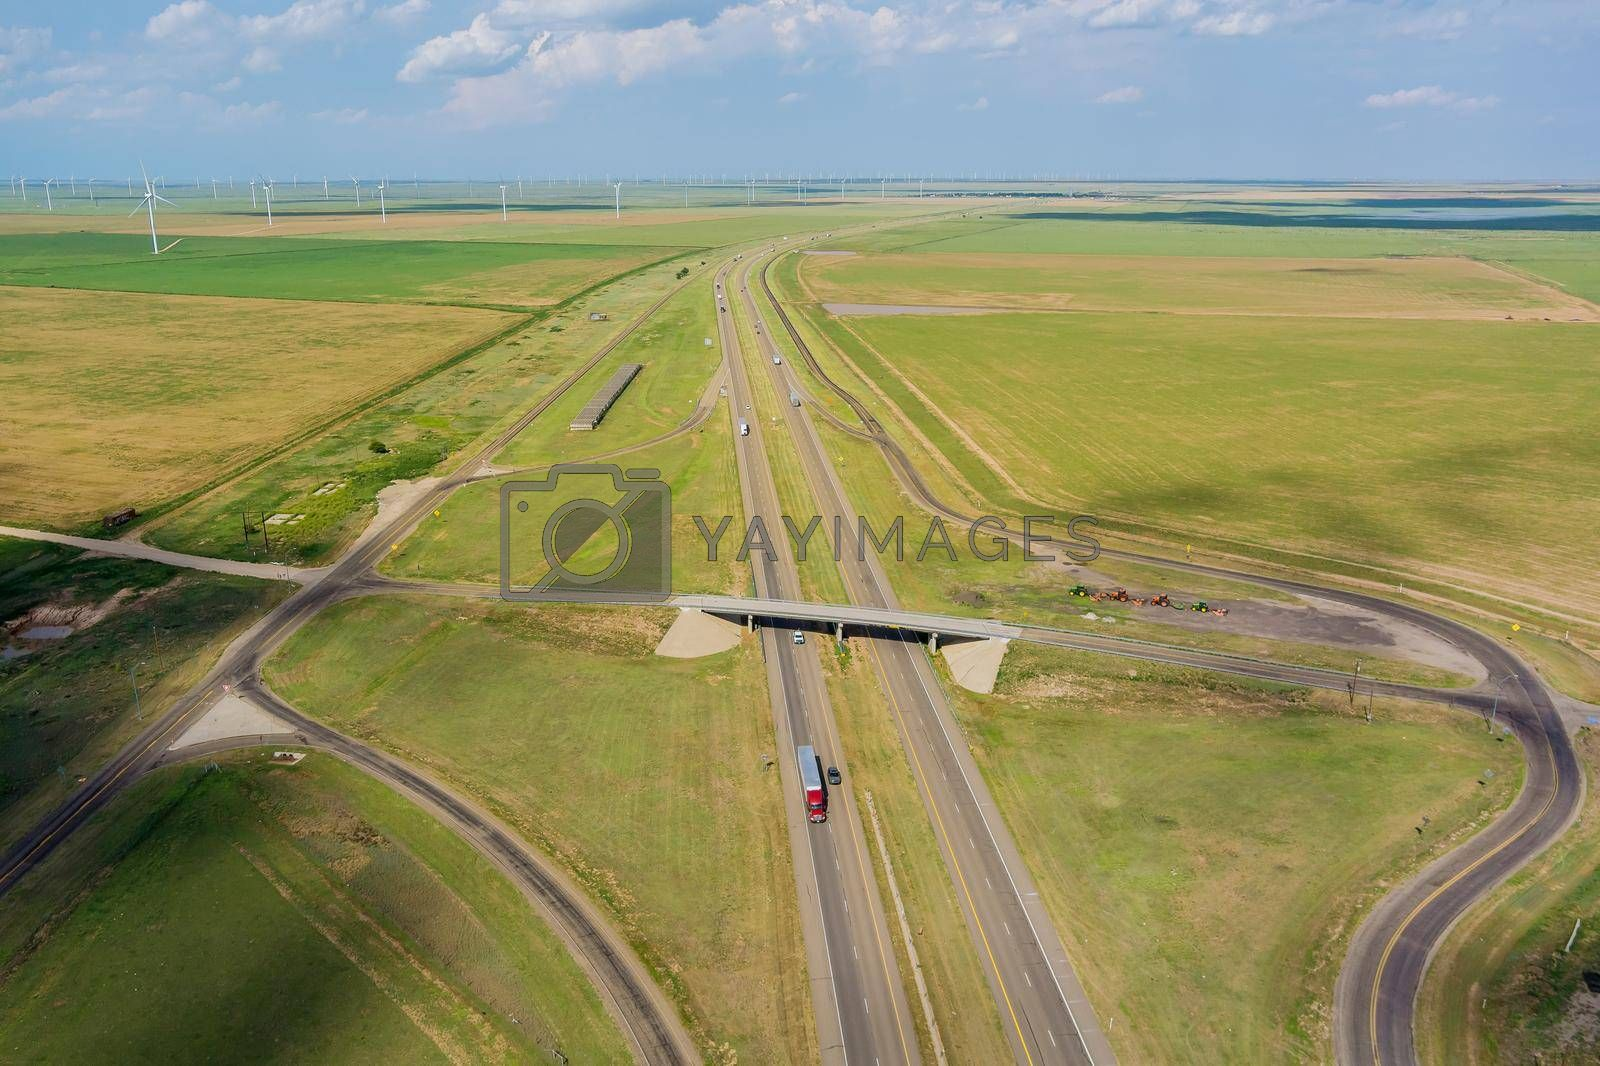 Royalty free image of Panorama aerial view of highway road junction from the height drone by ungvar